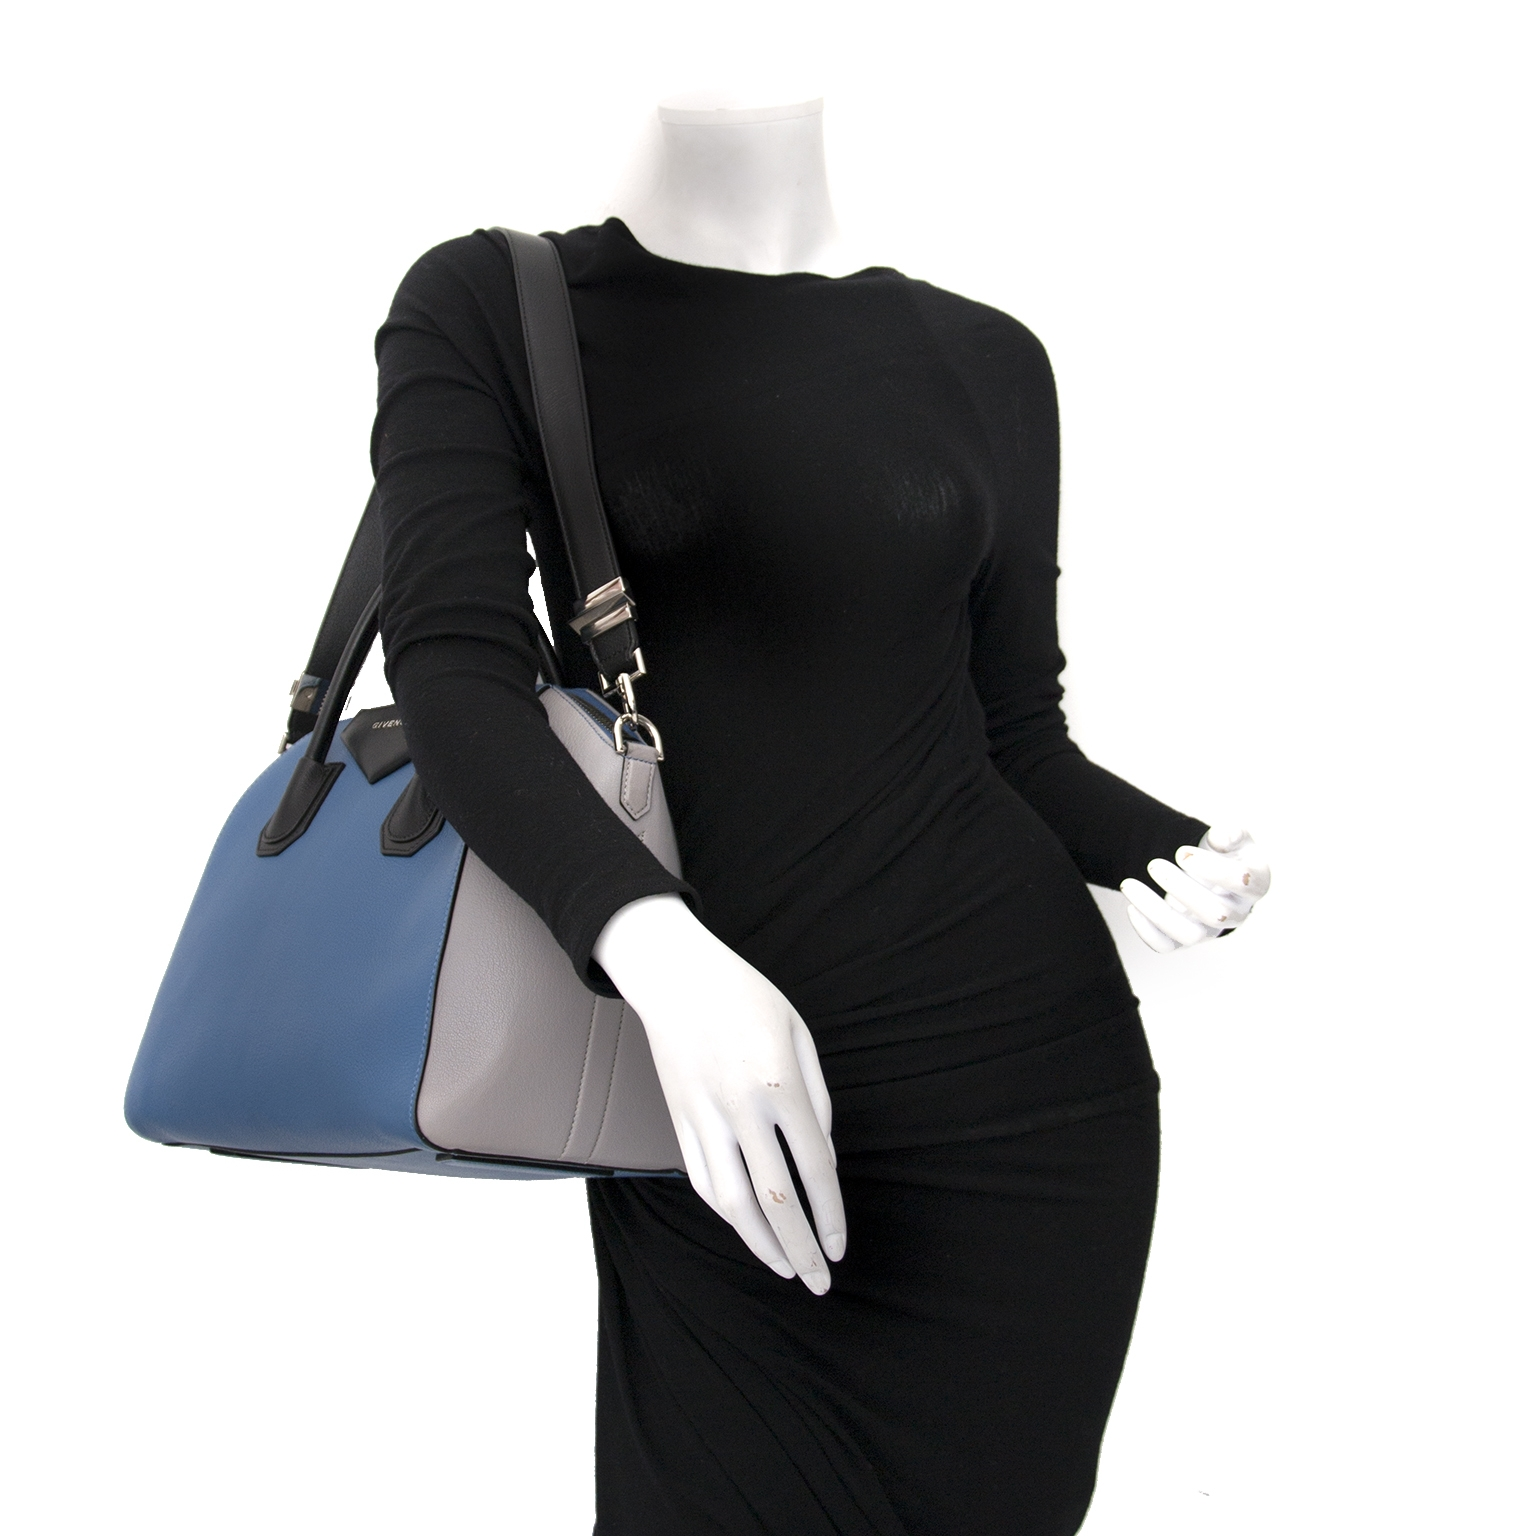 Buy authentic designer bags at the best price at Labellov. Safe and secure shopping.